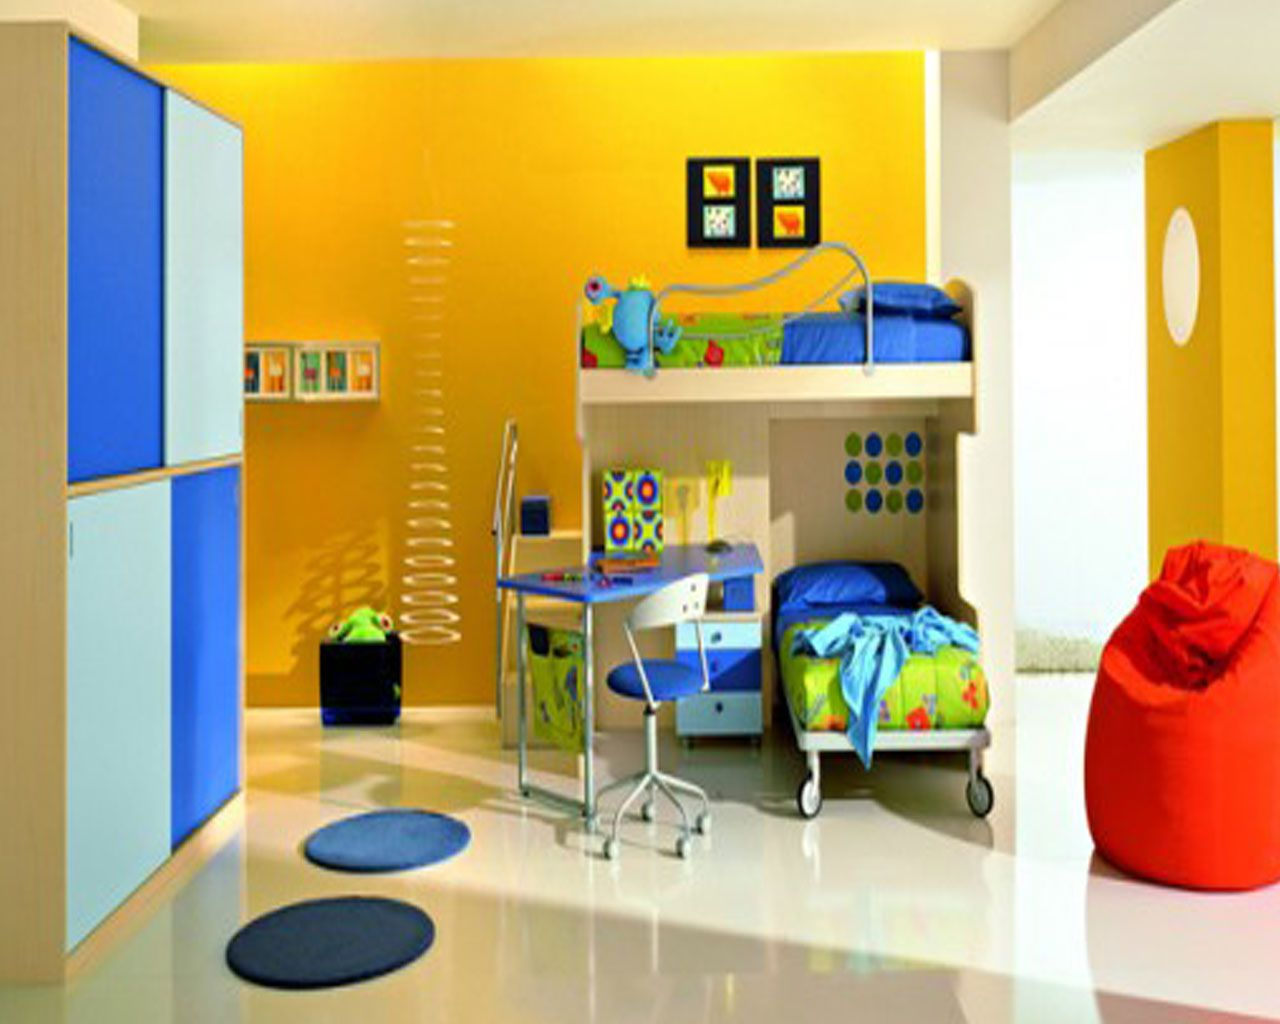 boys bedroom colors ideas  cool boys bedroom interior design with  - boys bedroom colors ideas  cool boys bedroom interior design with brightcolor paint  hd